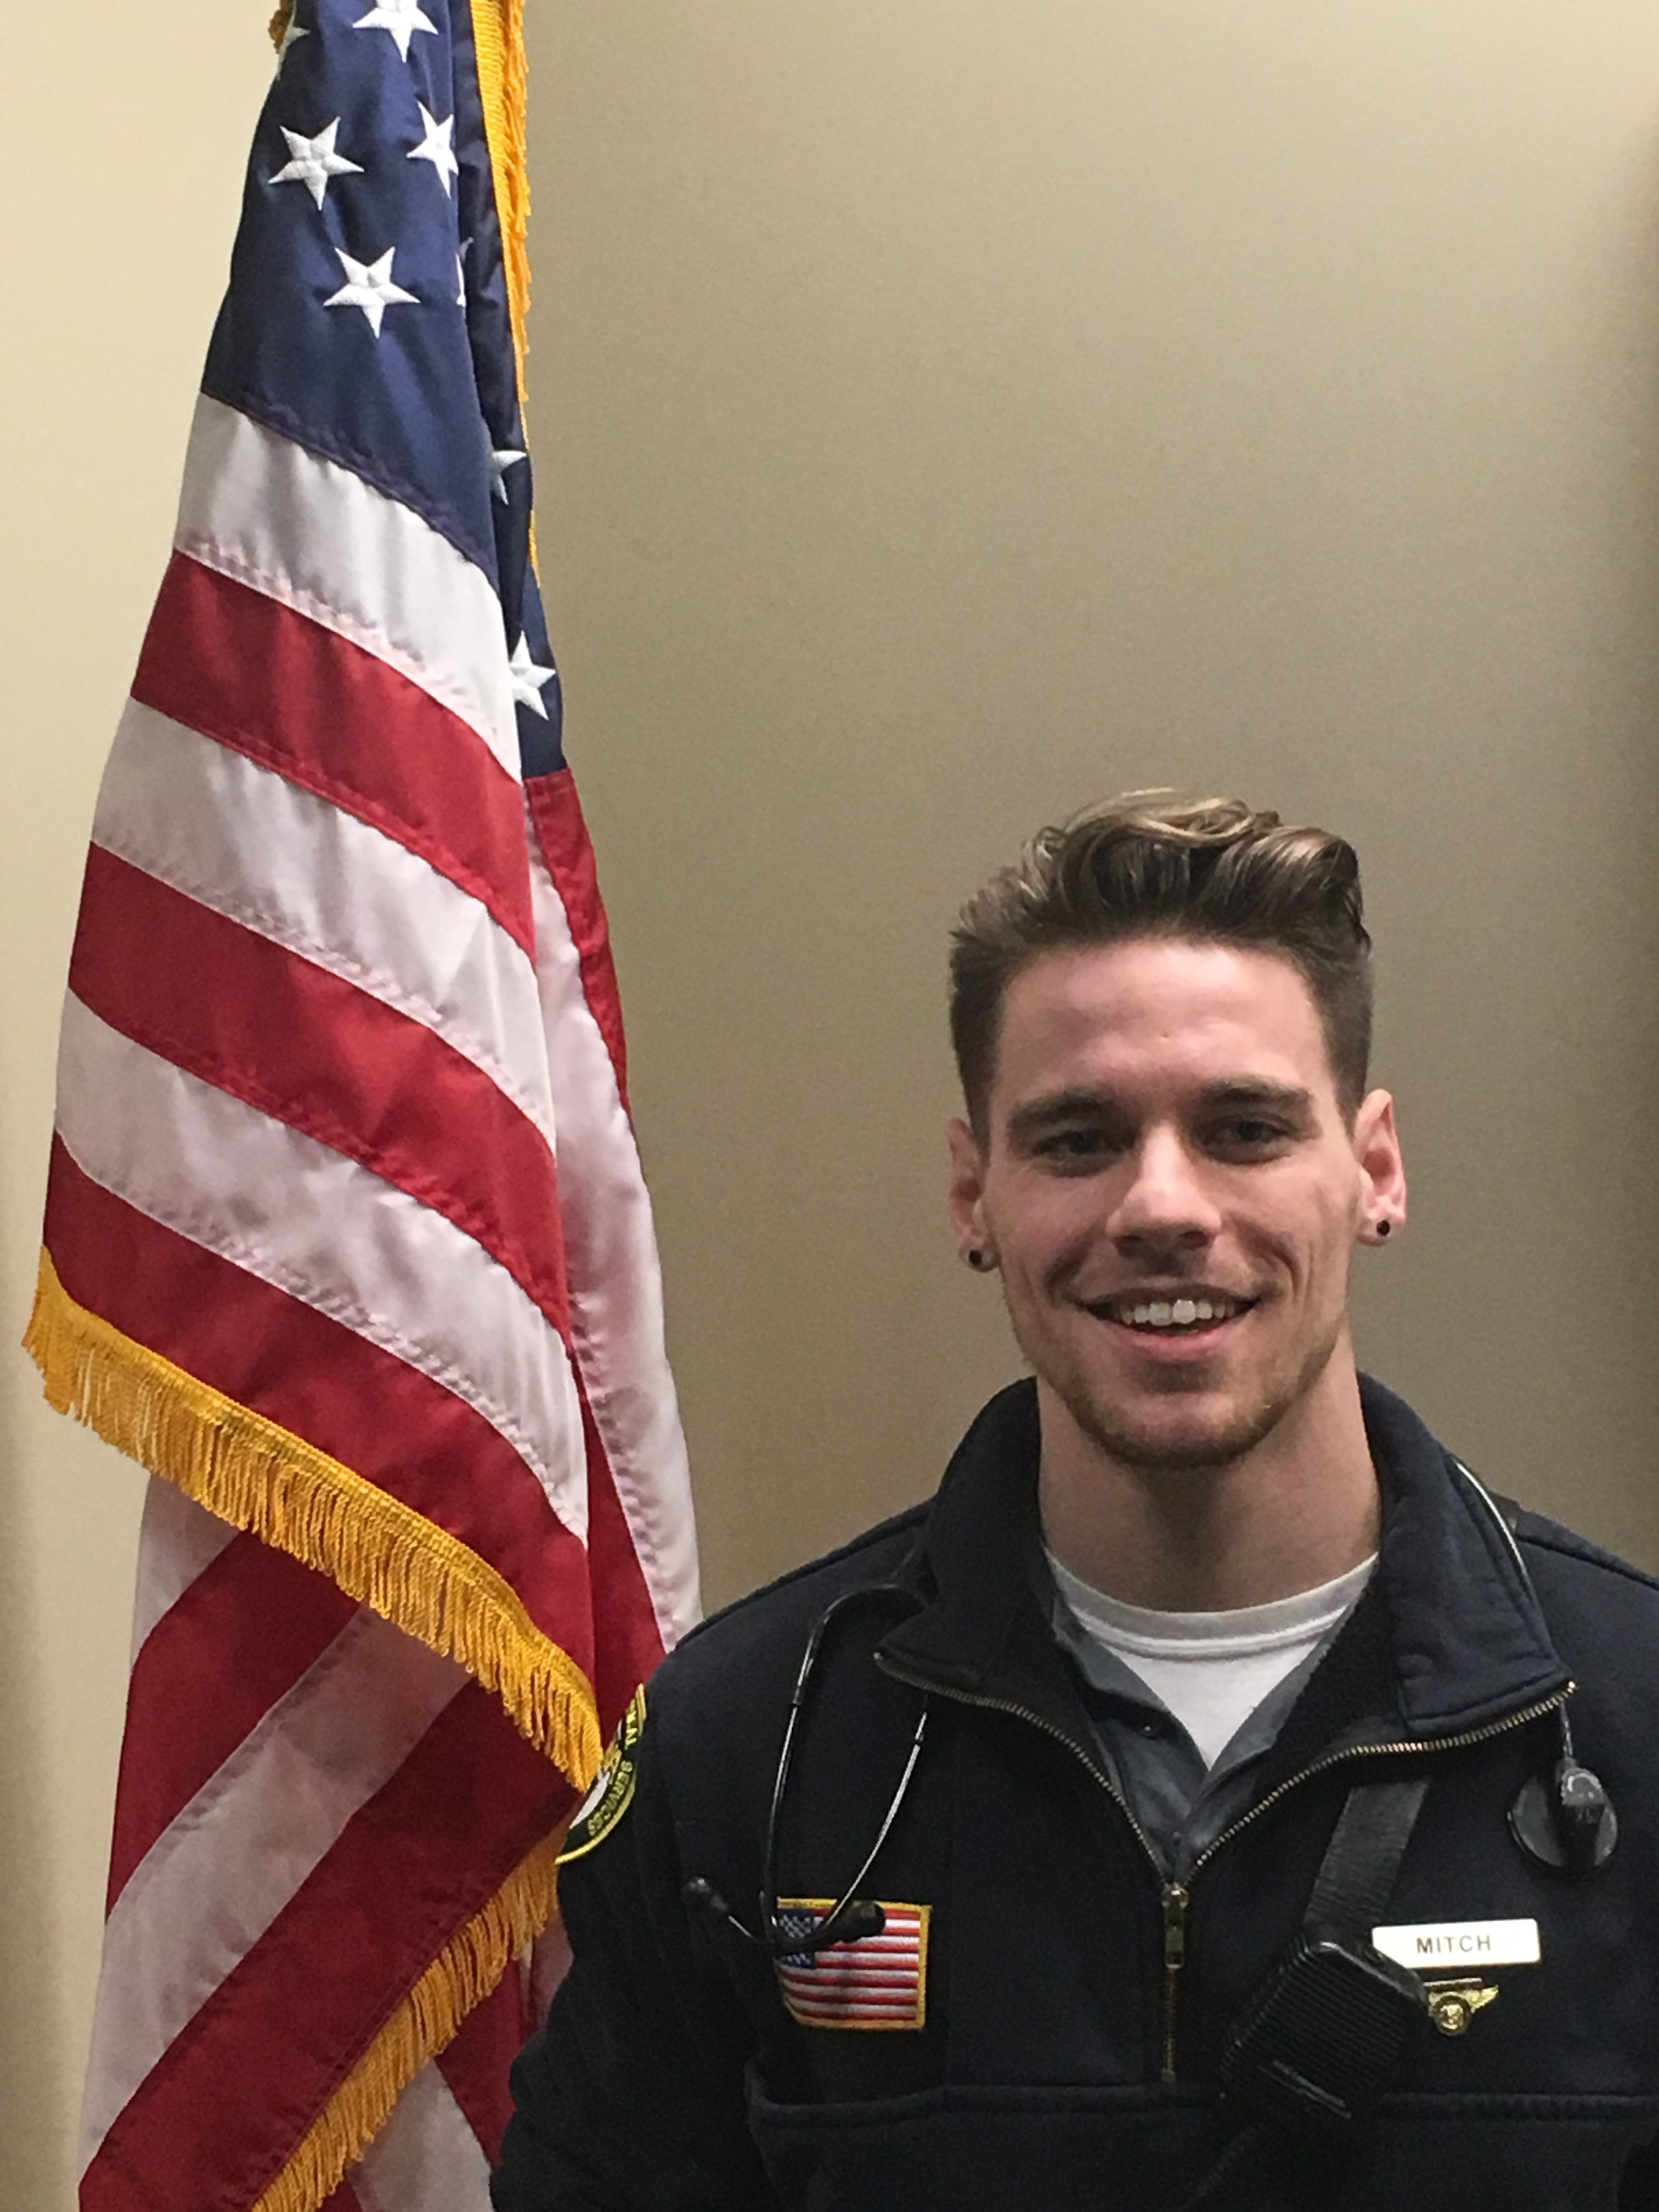 Flight paramedic certification asm aetna blog paramedic and preceptor mitch karr has recently joined a prestigious group of critical care providers by obtaining his flight paramedic certification 1betcityfo Images